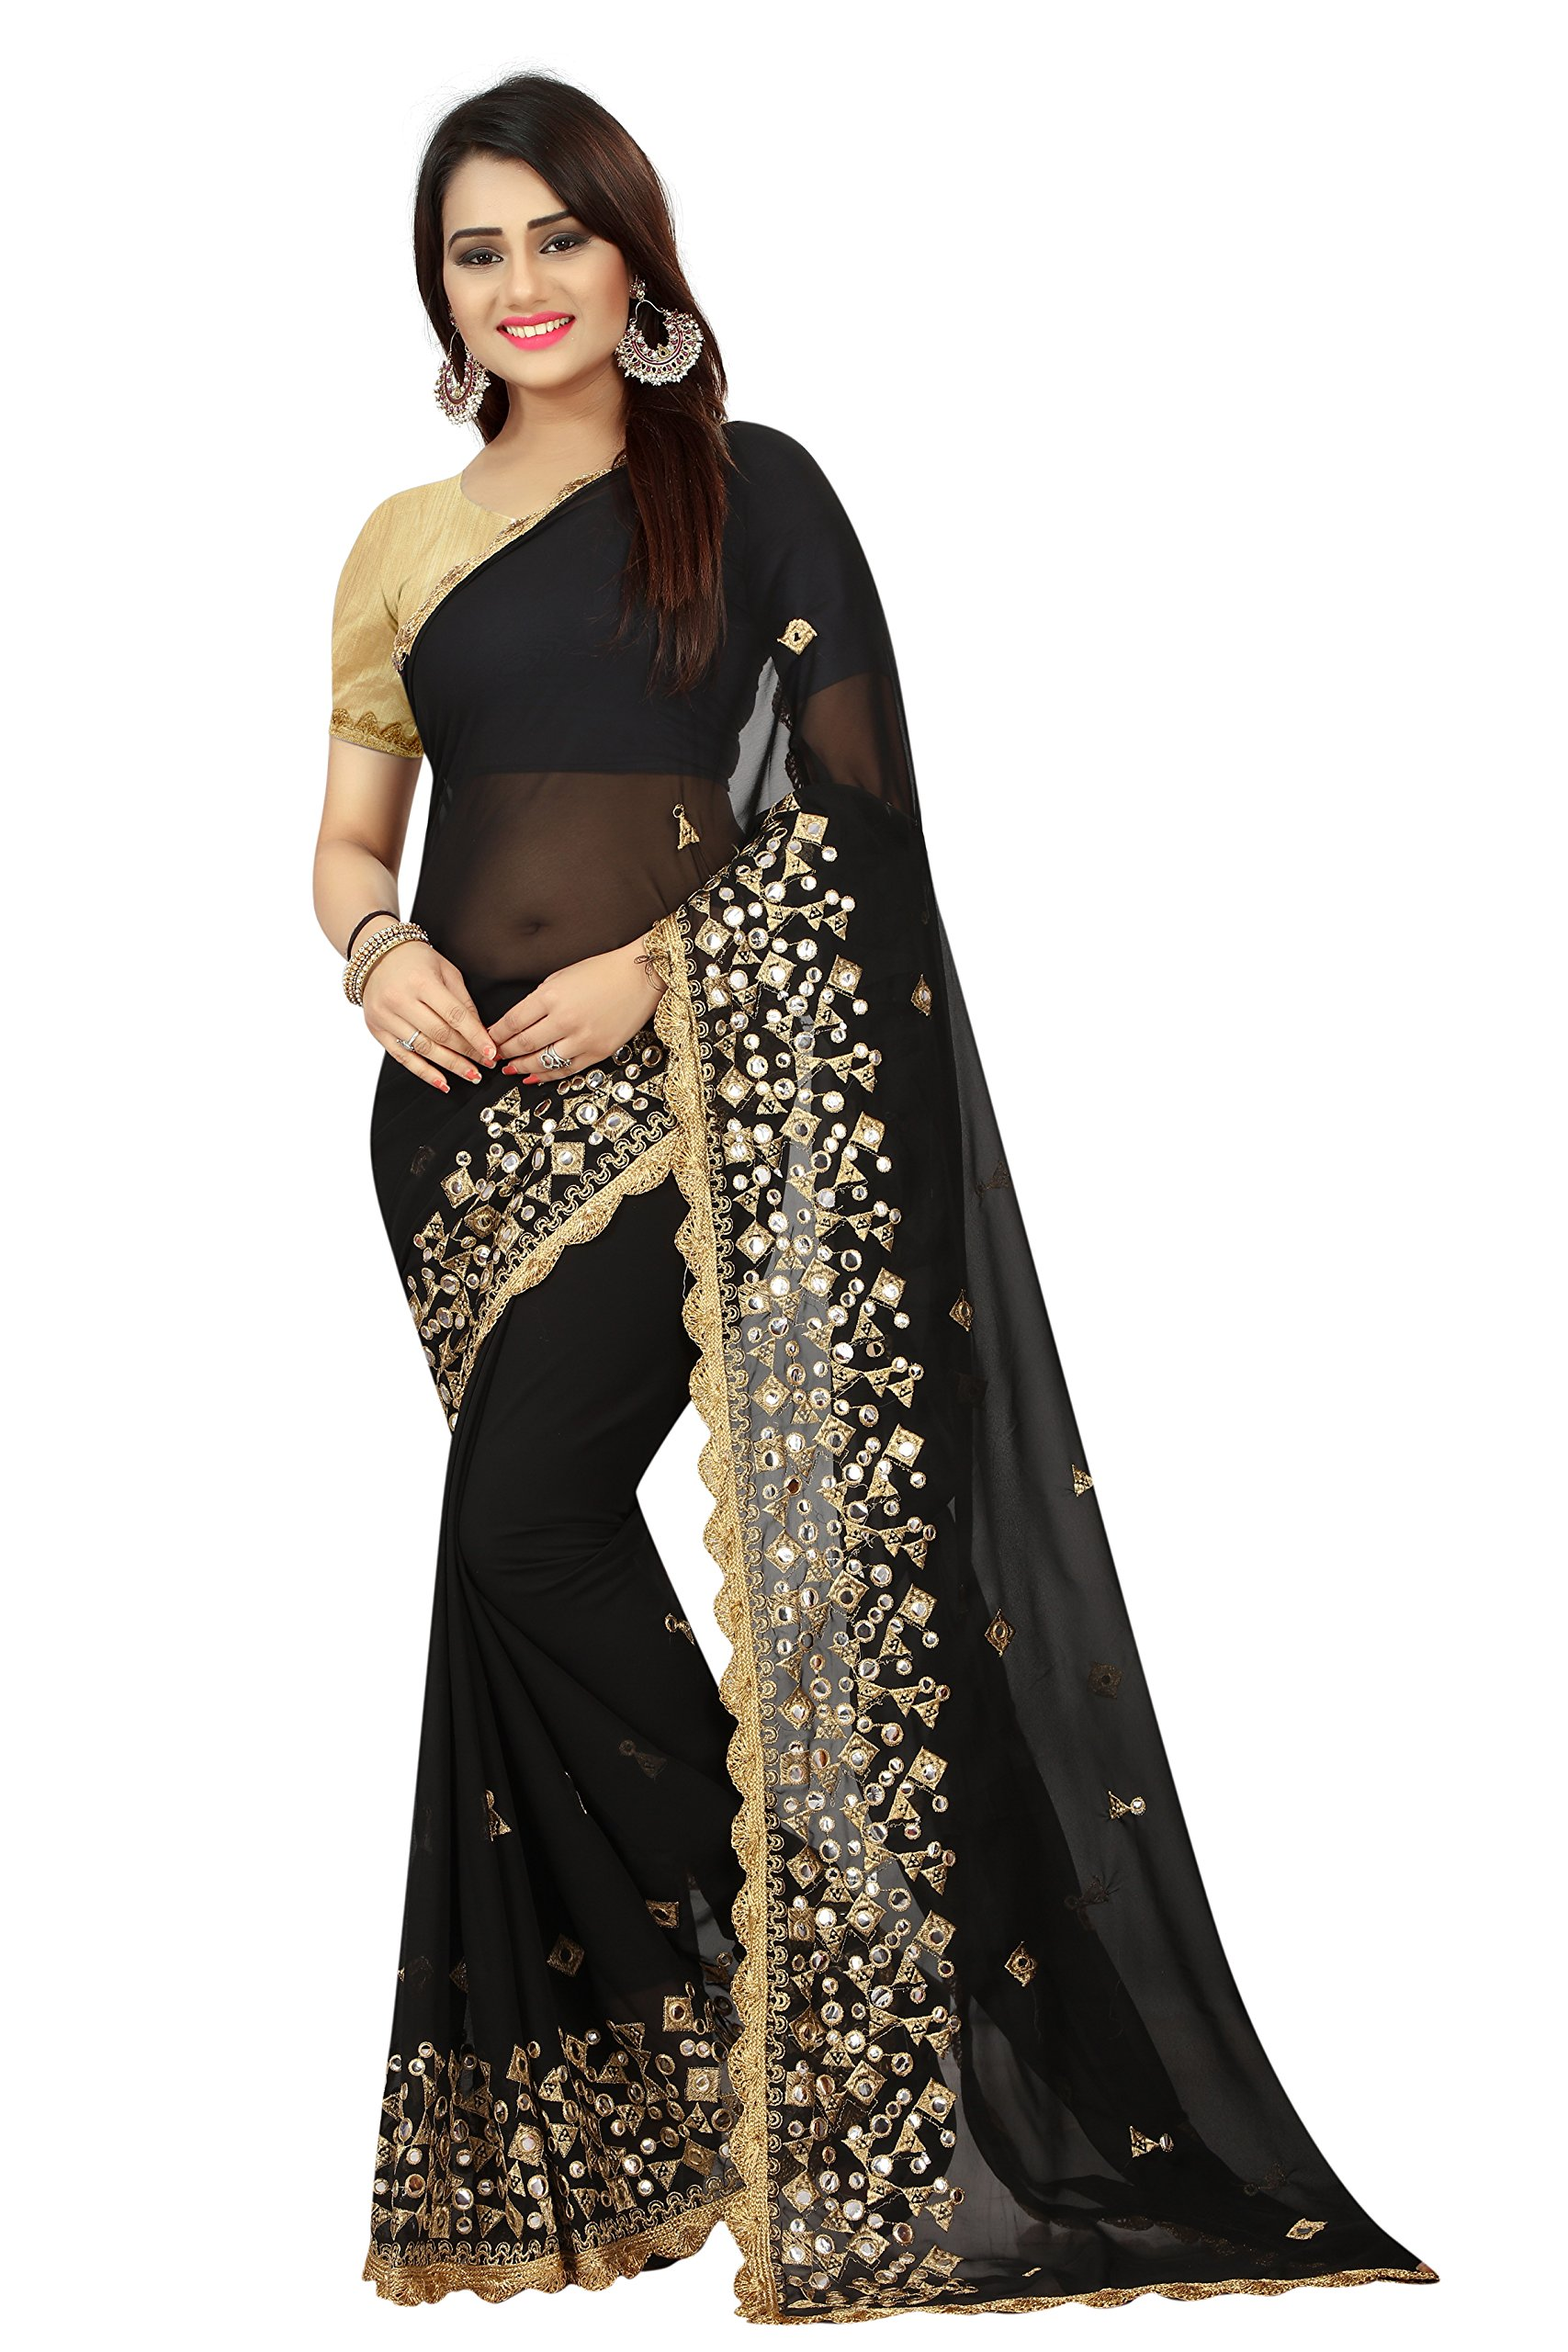 53ab7faed5 Shailaja Saree Women's Georgette Zari Embroidery And Foil Mirror Glass Work  Wedding Wear Saree With Blouse Piece